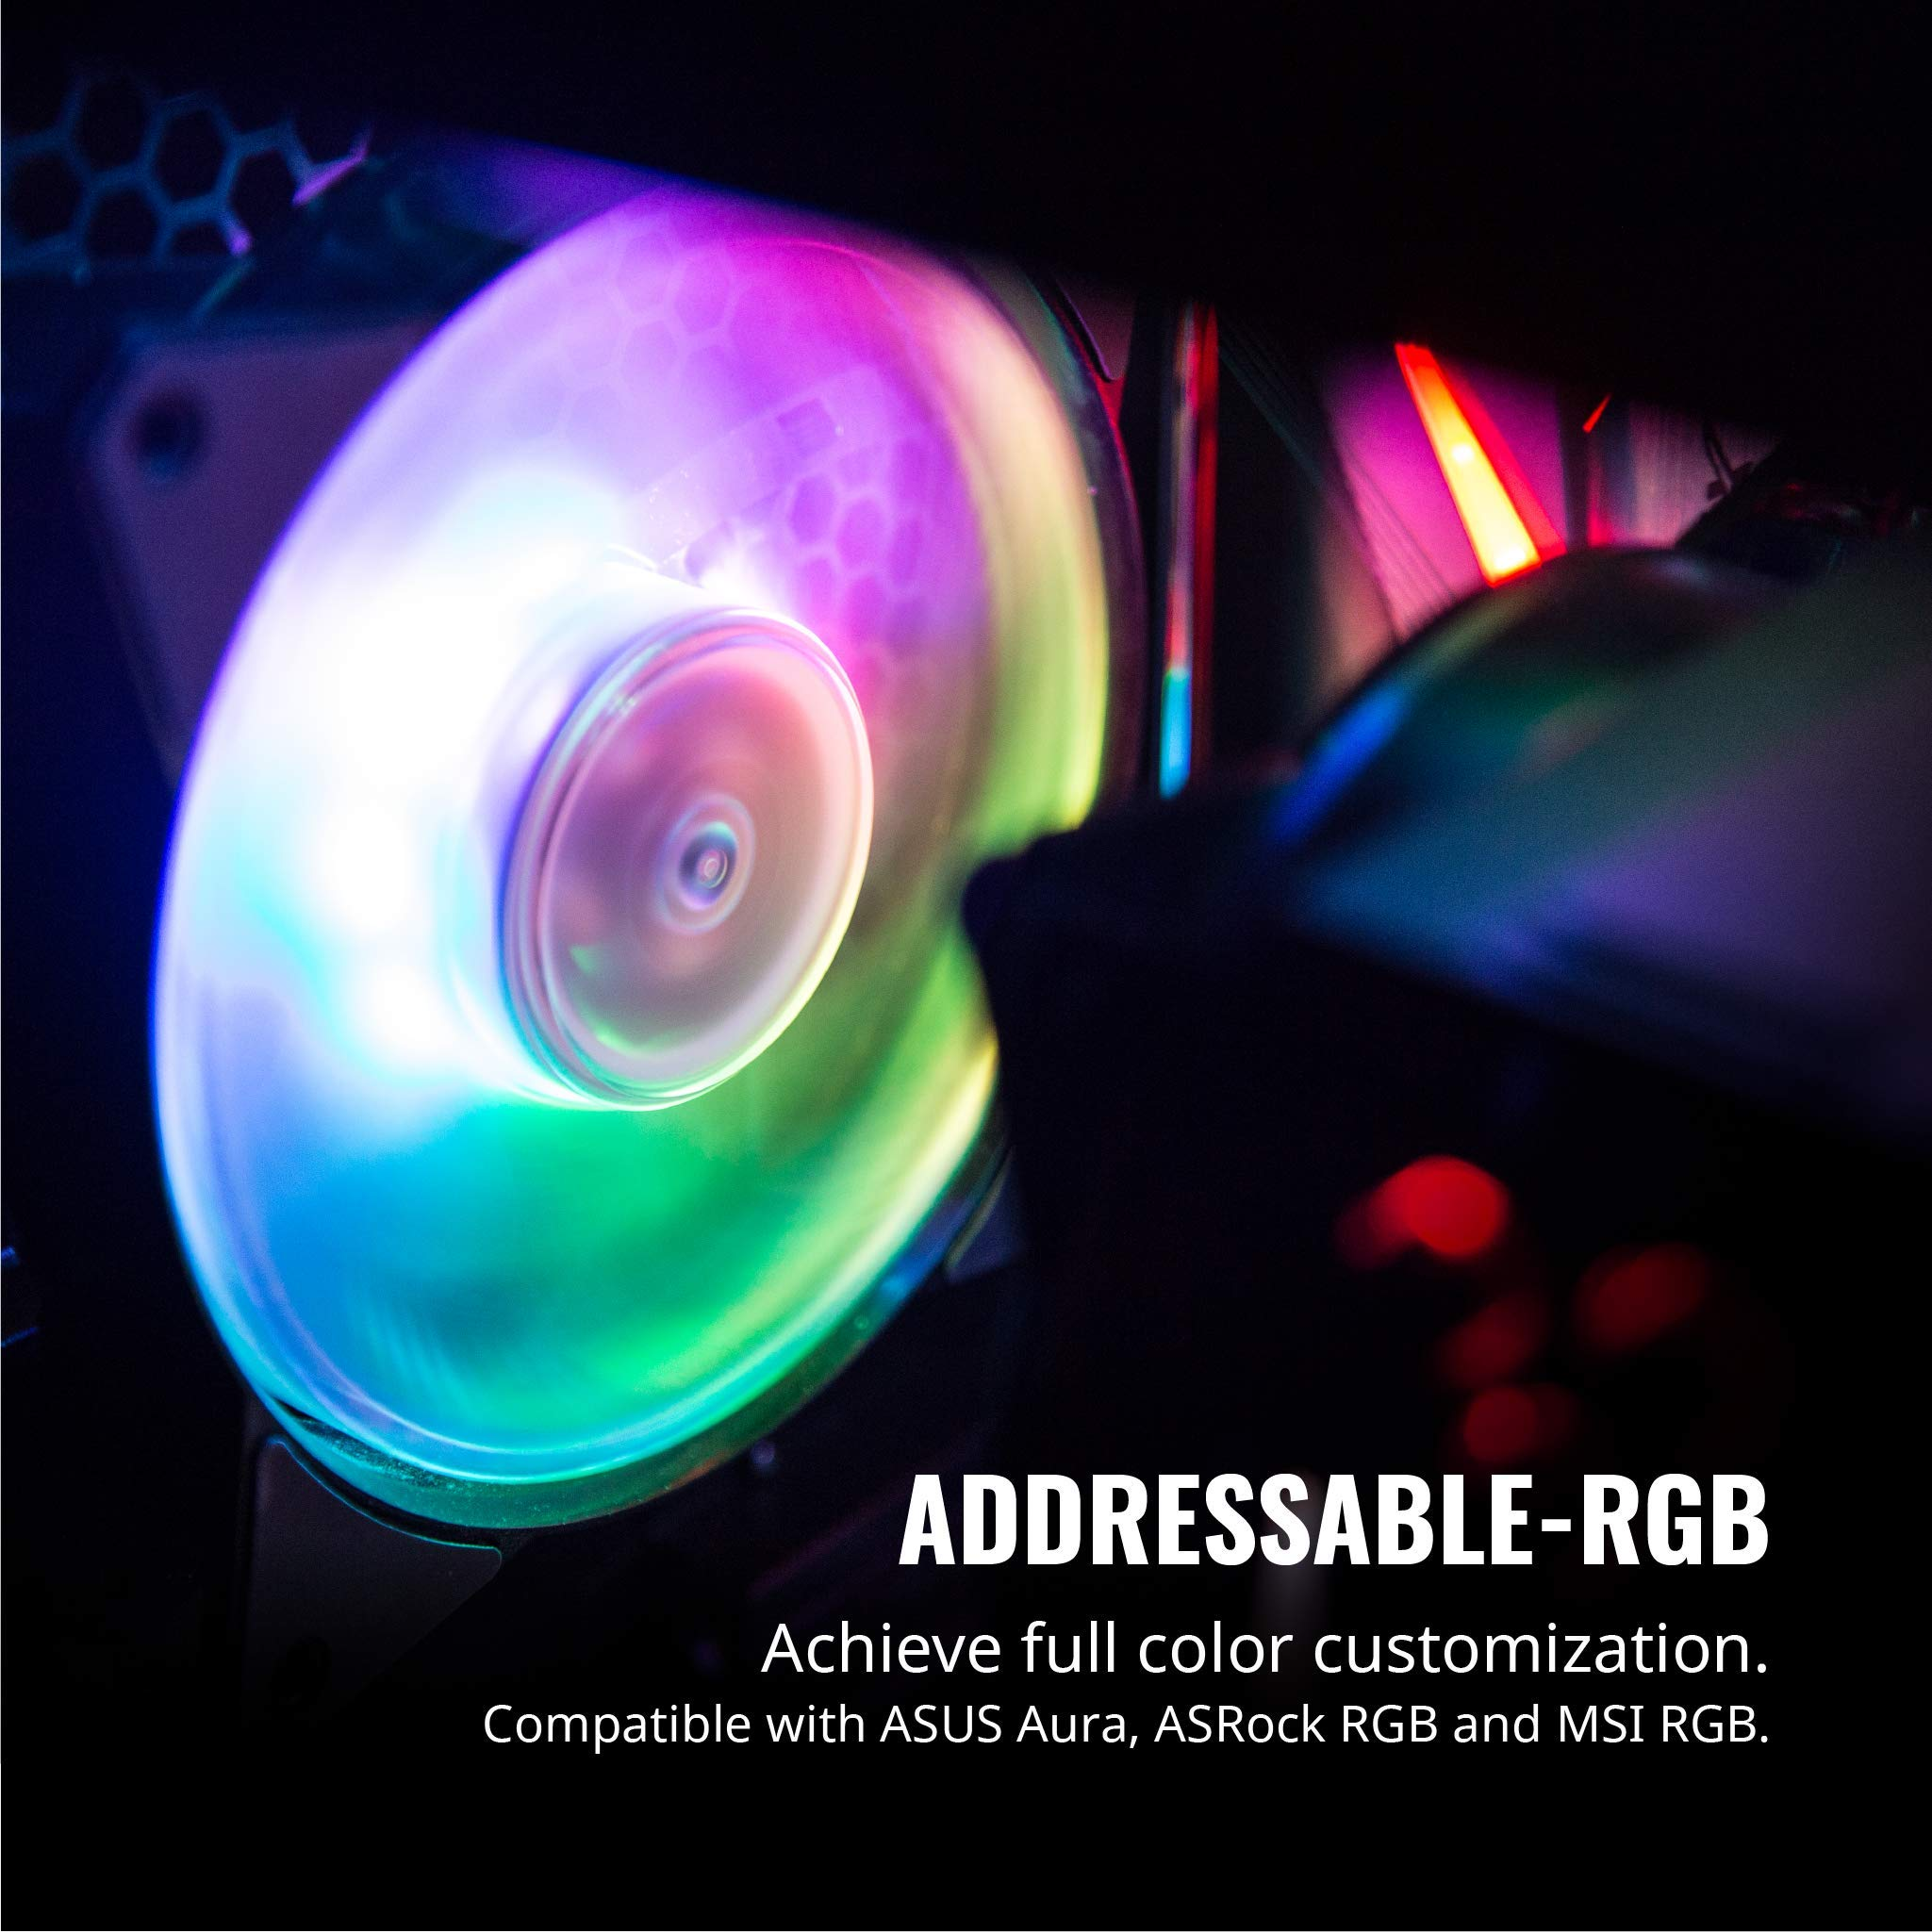 Cooler Master R4-120R-203C-R1 Master Fan MF120R- 120mm Air Balance Addressable ARGB 3in1 Case Fans Computer Cases CPU Coolers and Radiators by Cooler Master (Image #2)